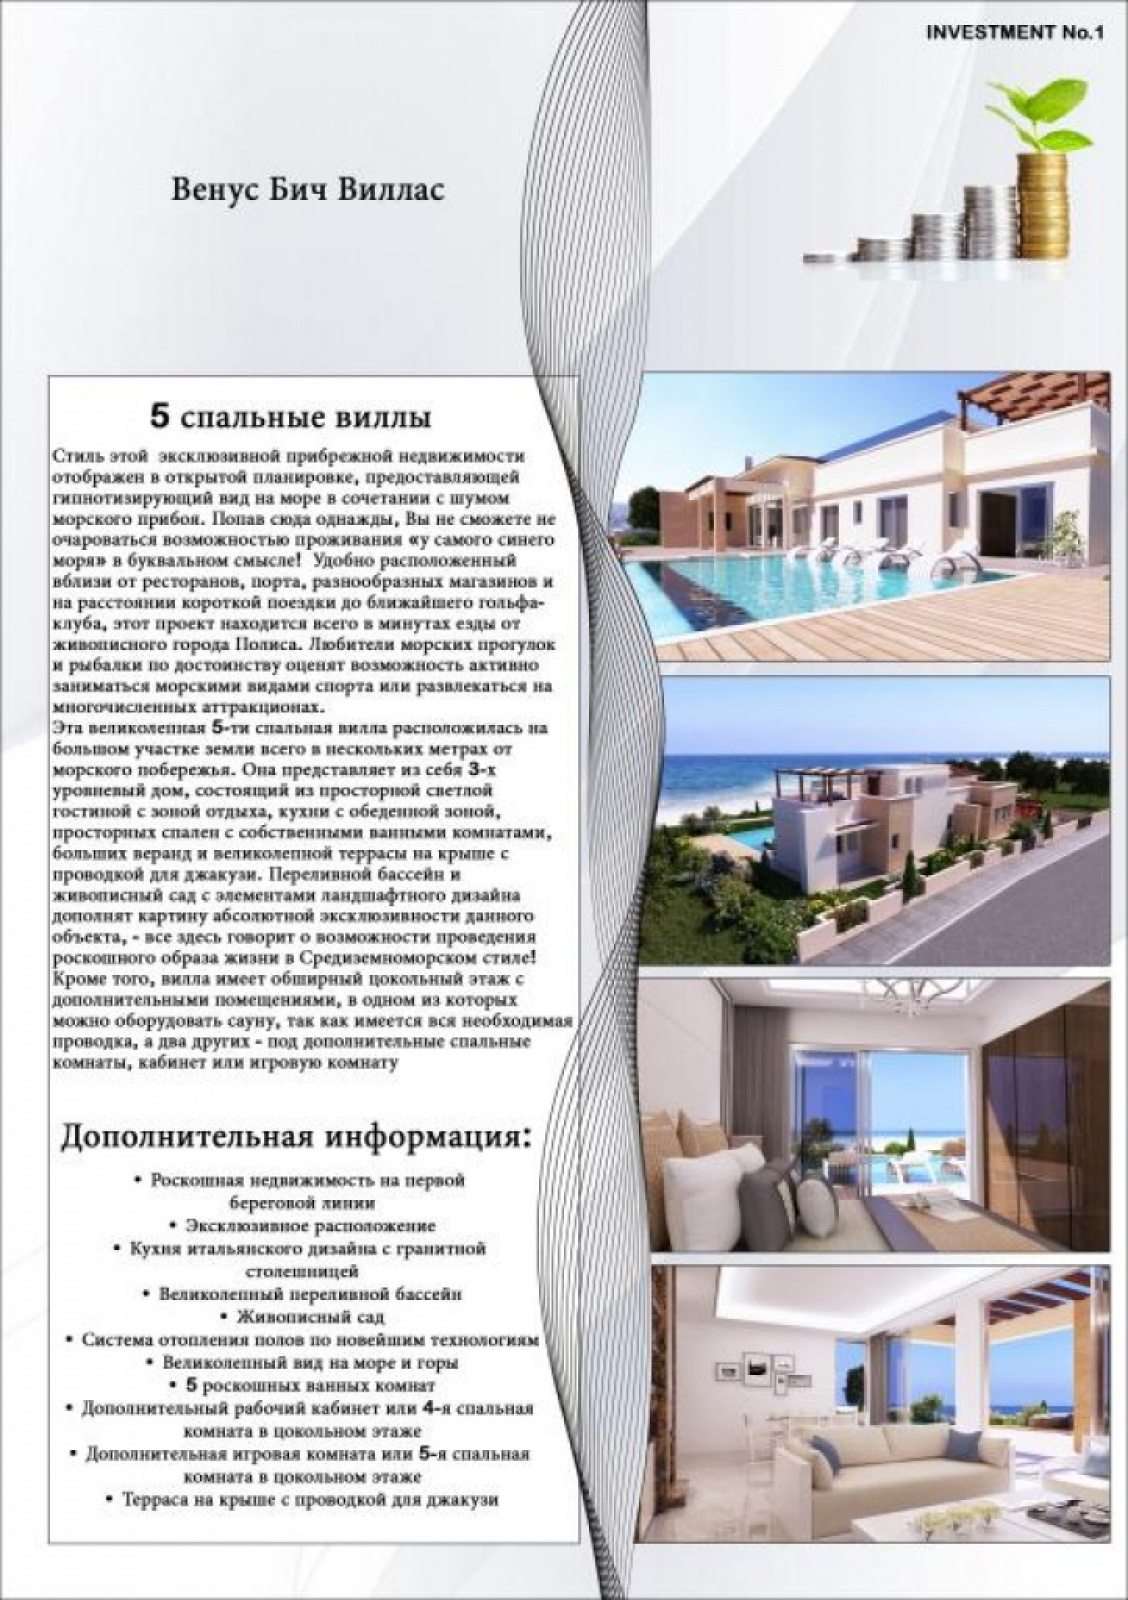 Residential Bungalow - Beach Villas/Bungalows FOR SALE